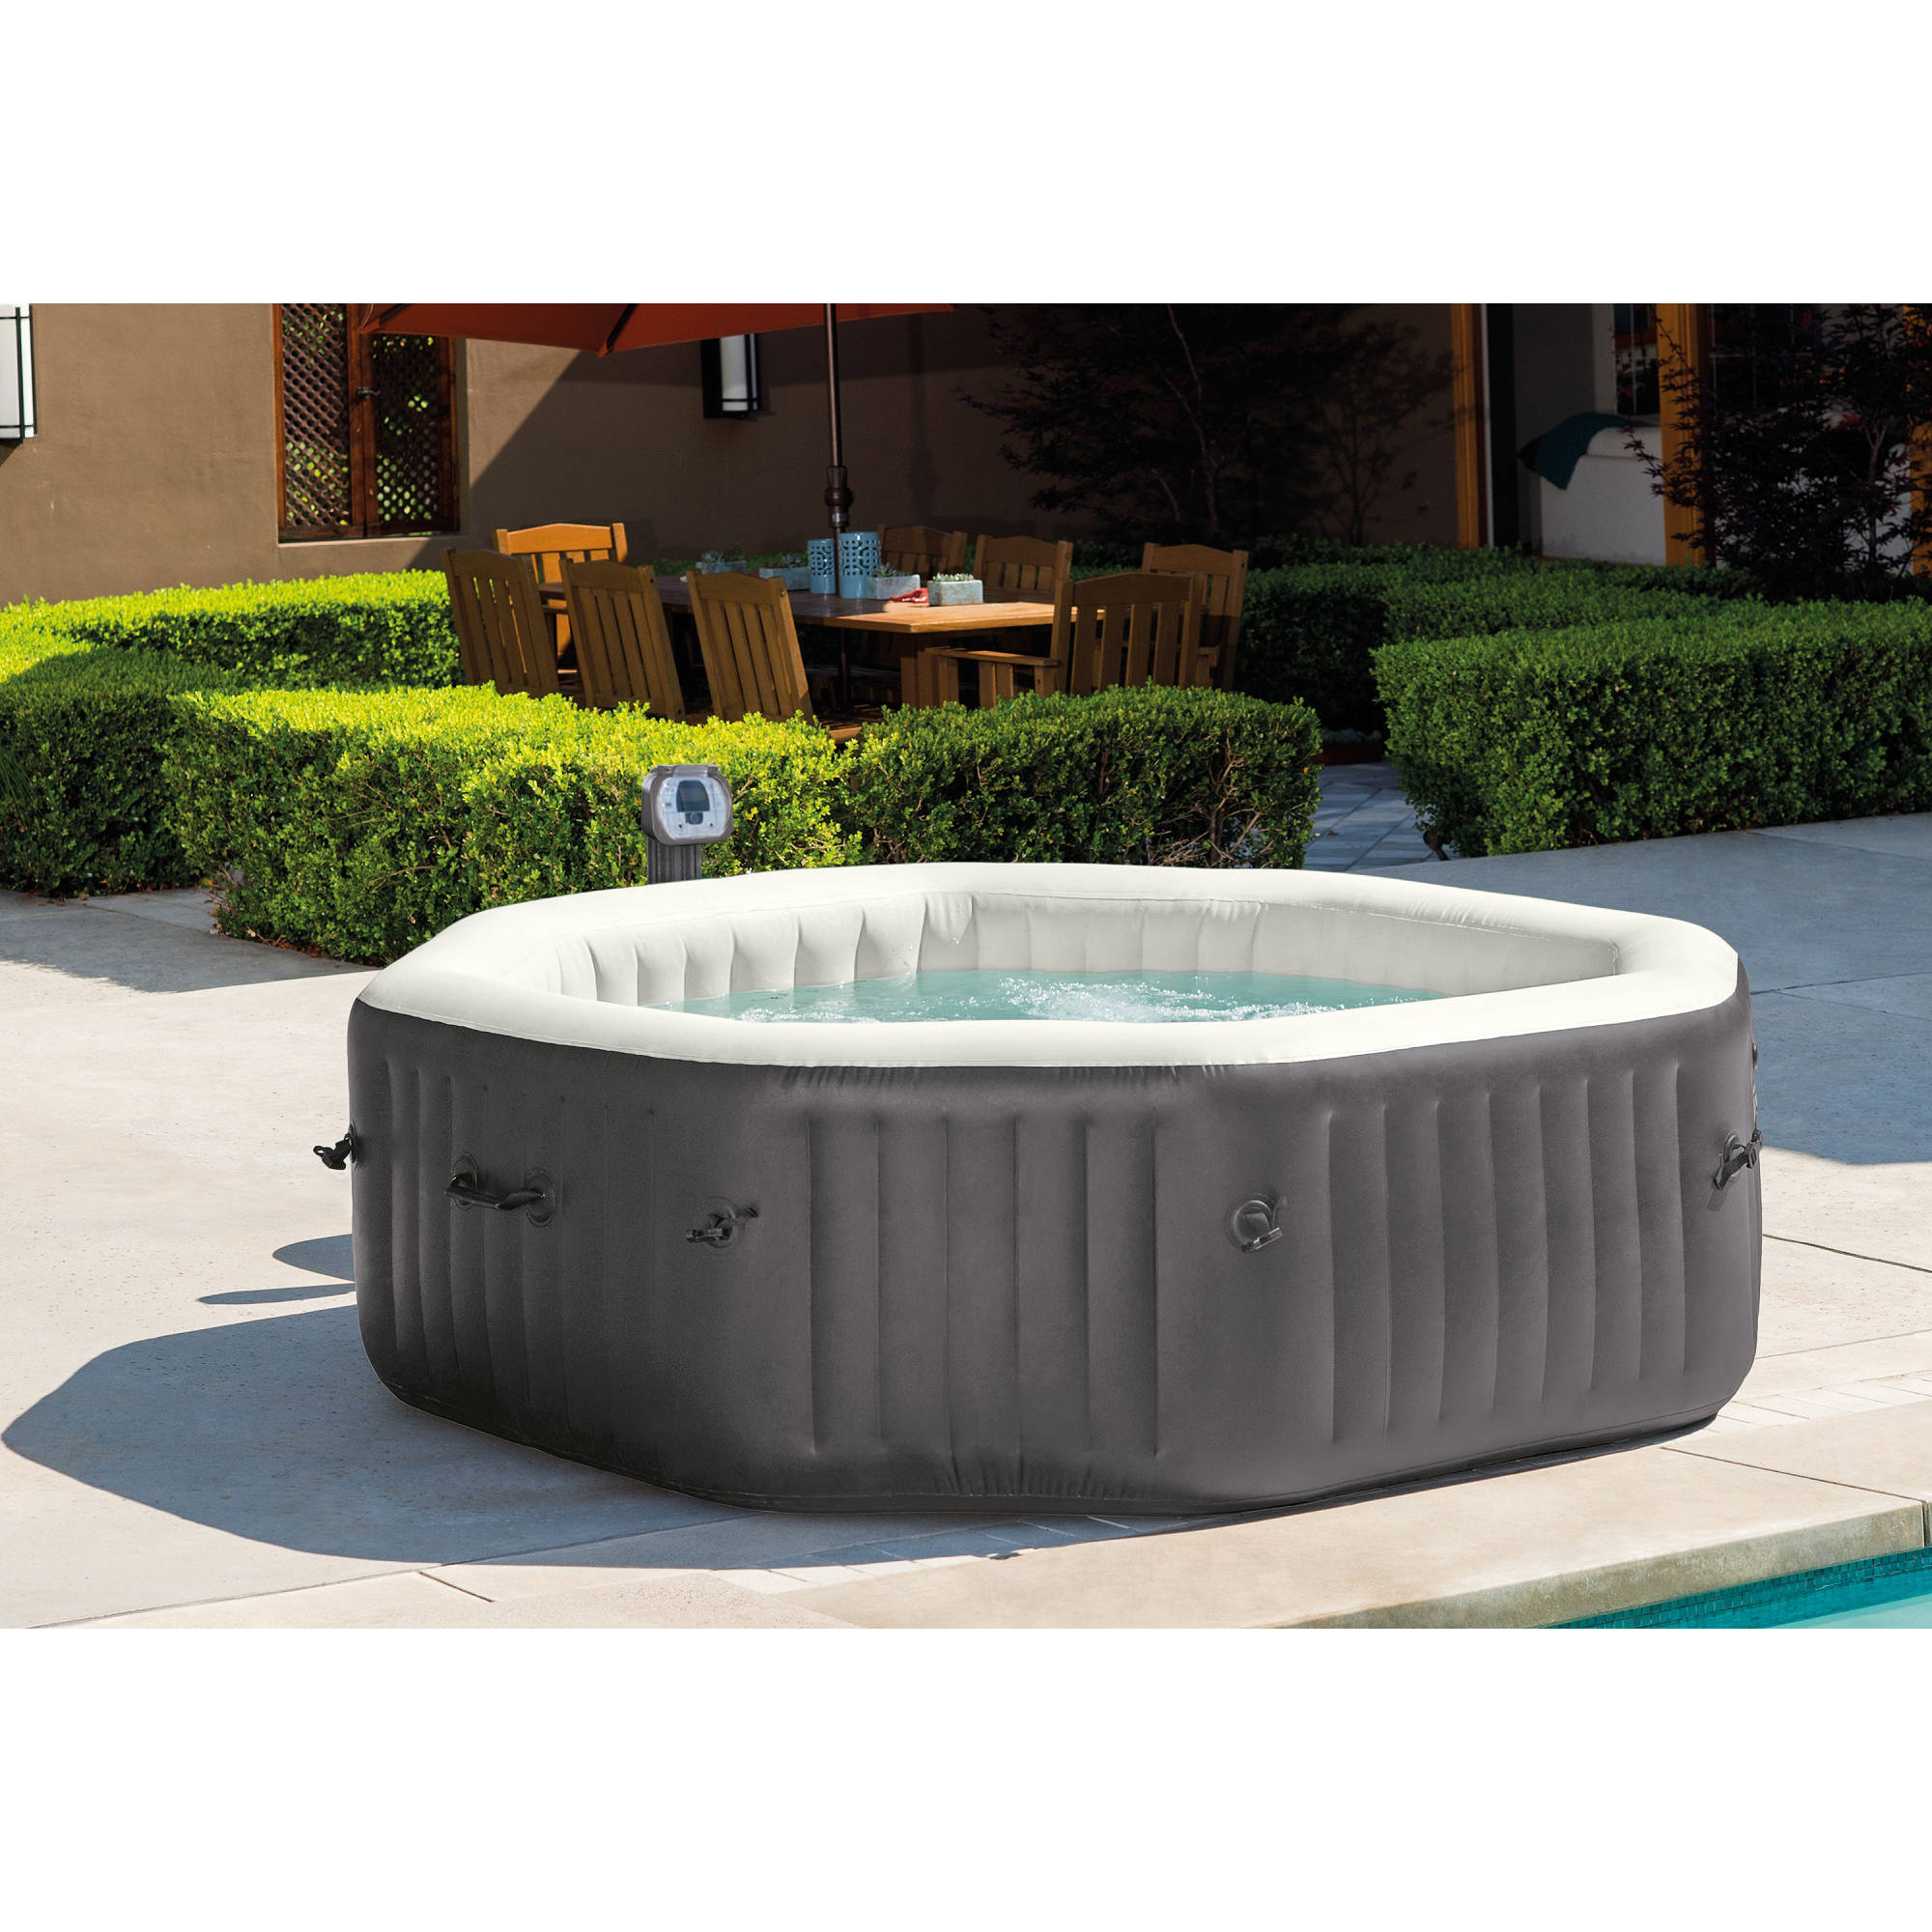 Intex 6-Person Octagonal PureSpa with 140 Bubble Jets